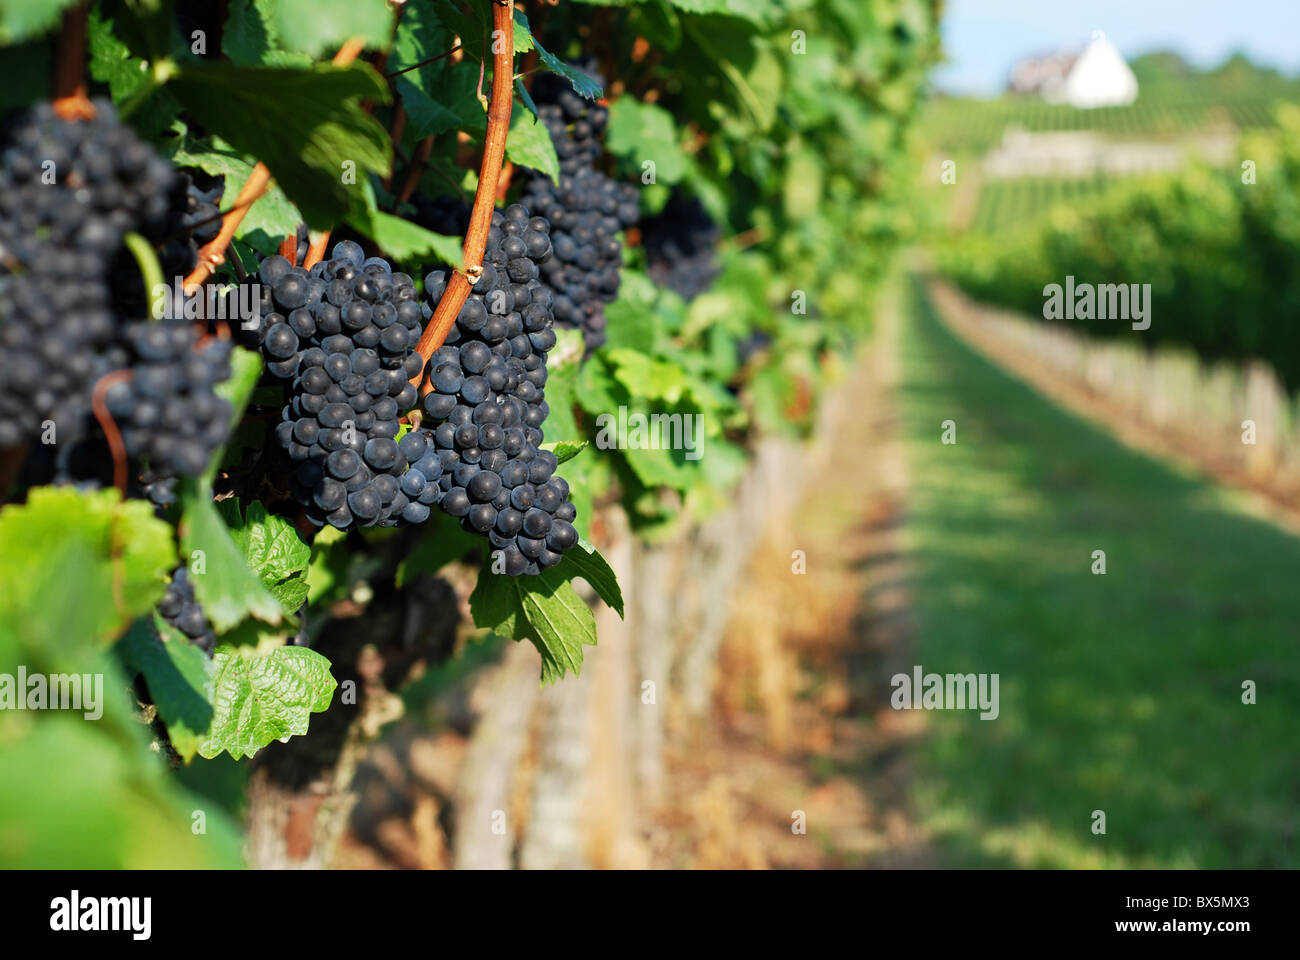 Pinot noir grapes on the vine, Volnay, Burgundy, France - Stock Image